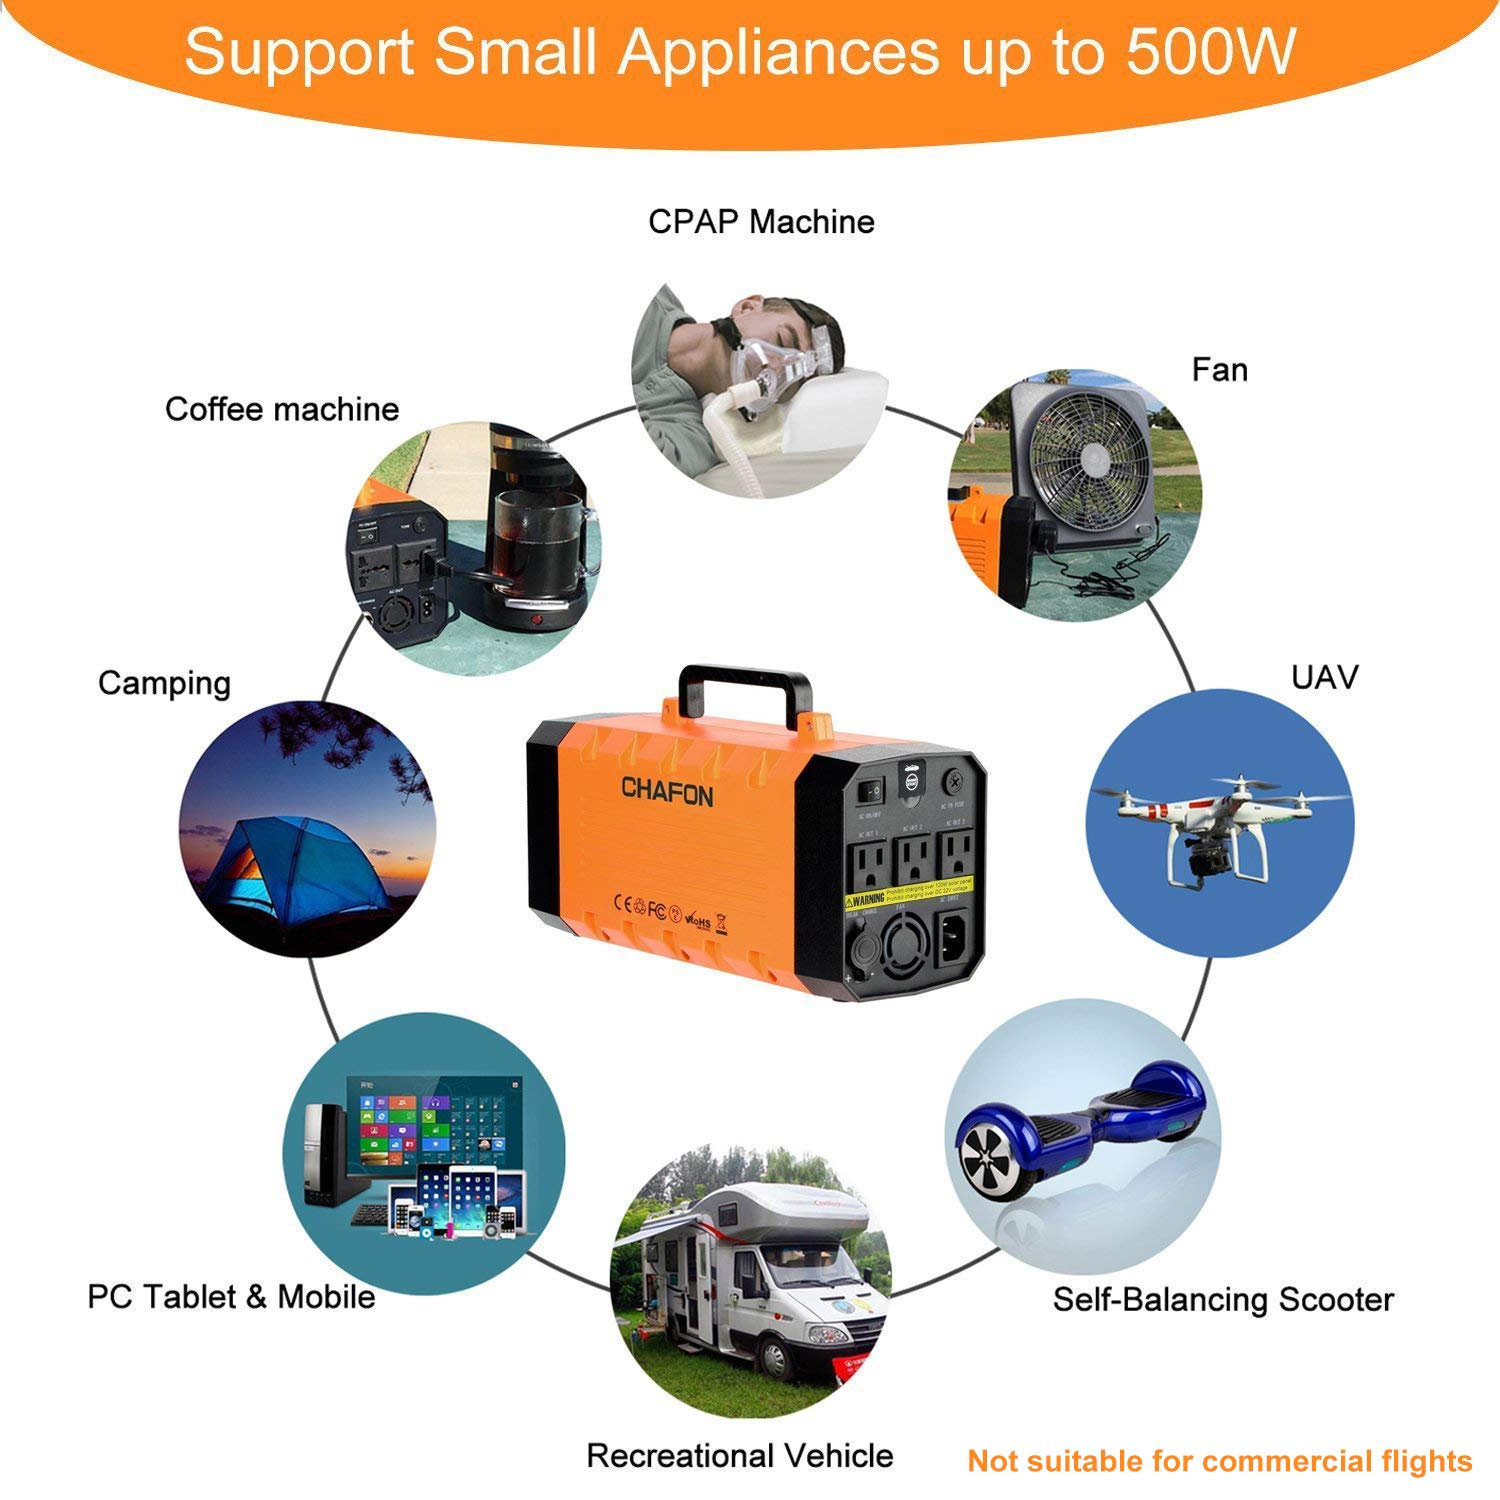 288wh Portable Generator Ups Battery Backuprechargeable Circuit Diagram 500w Power Source Inverter With 110v Ac12v Carusb Portscar Jump Starter For Camping